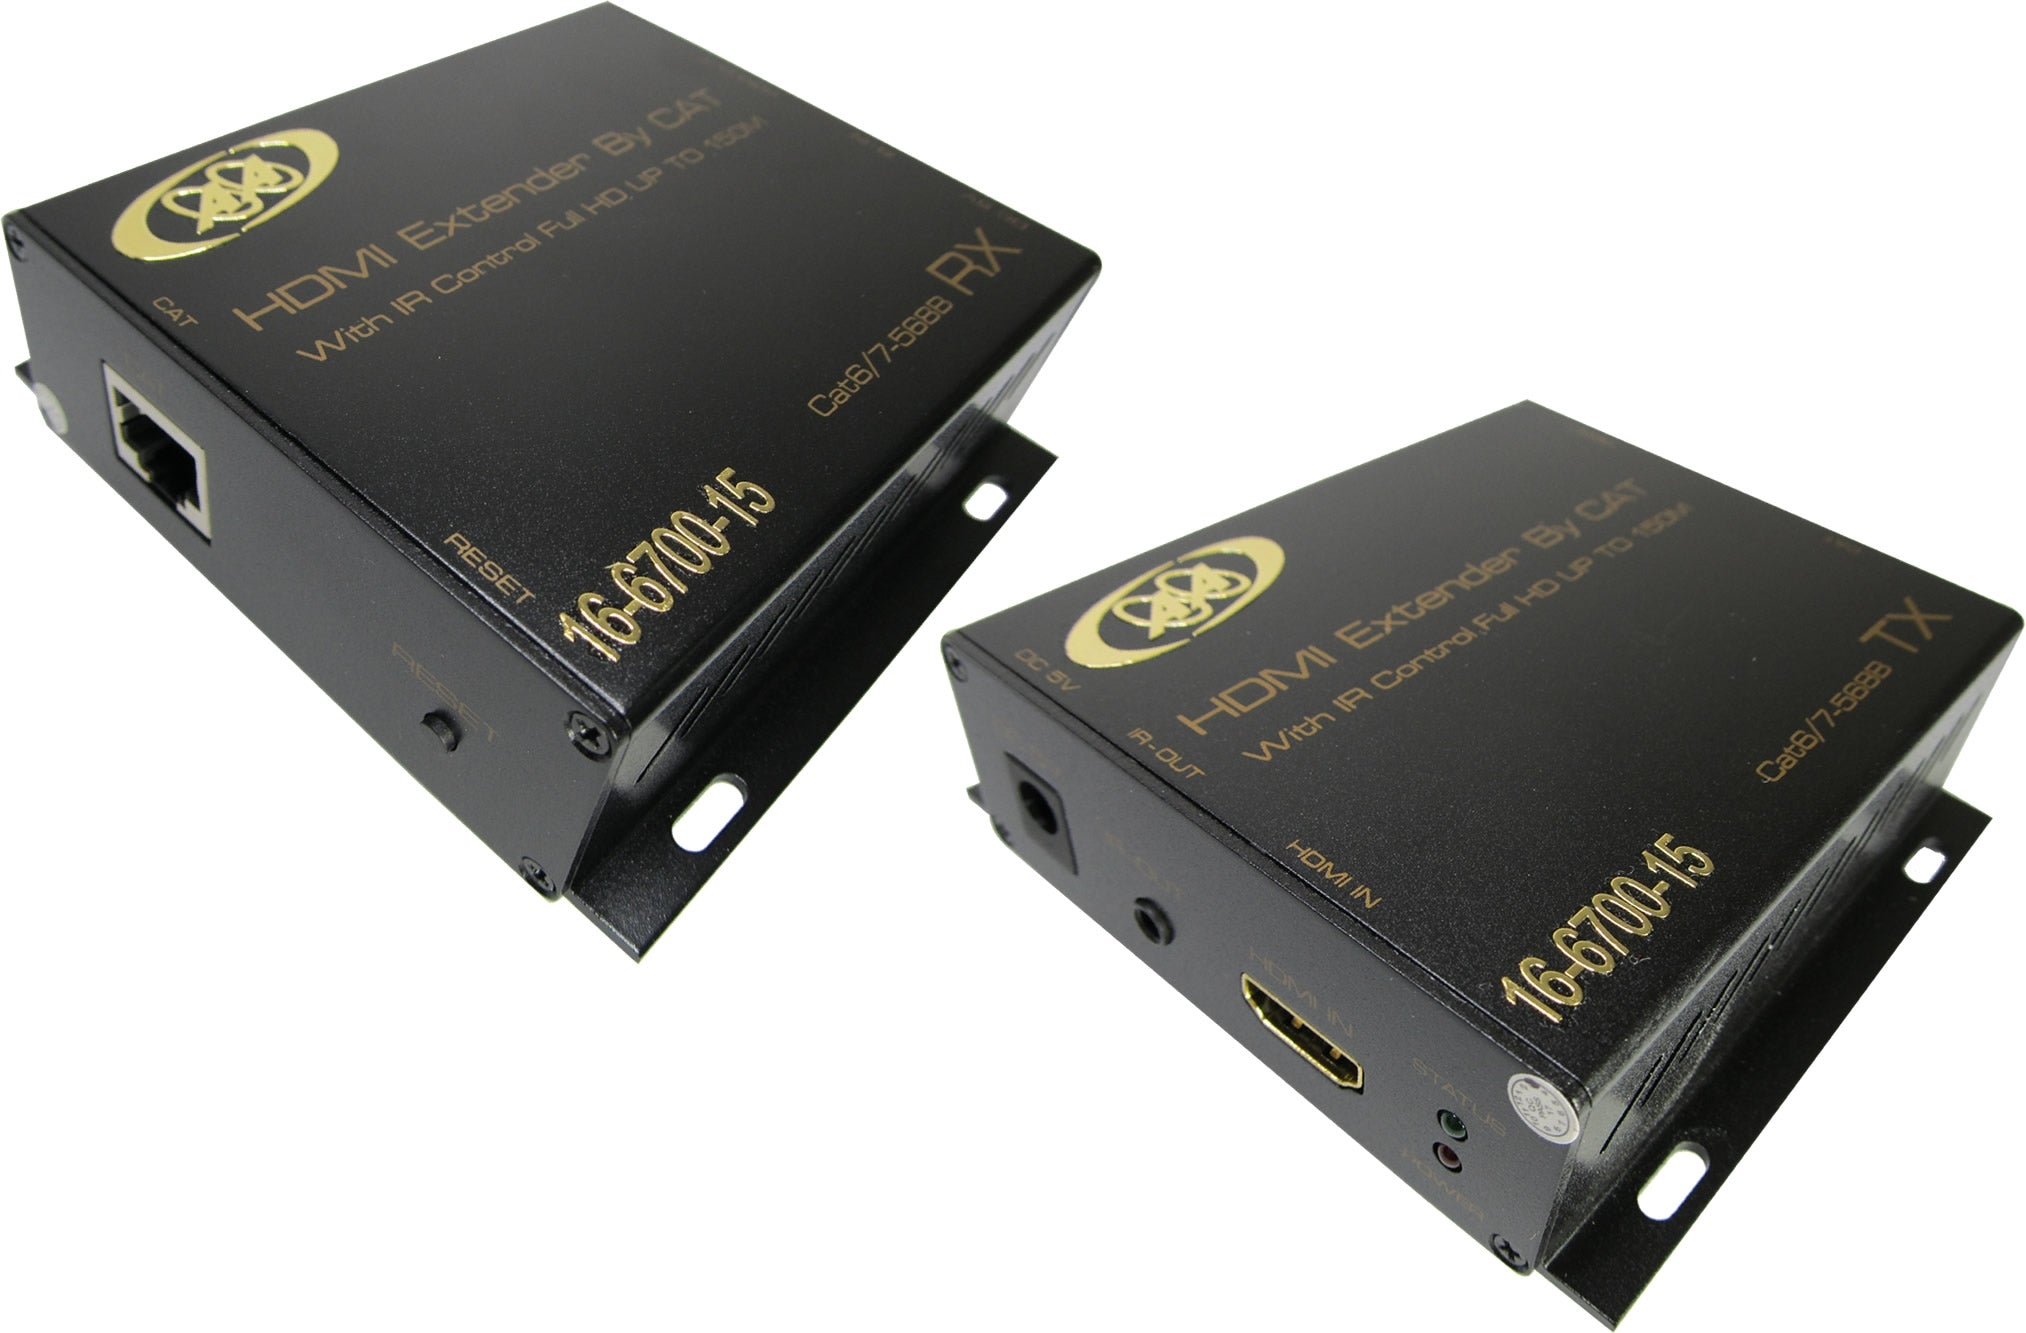 16-6700-20/21 HDMI Extender 1080P over Single Coaxial 500M support EDID Multi-Receiver